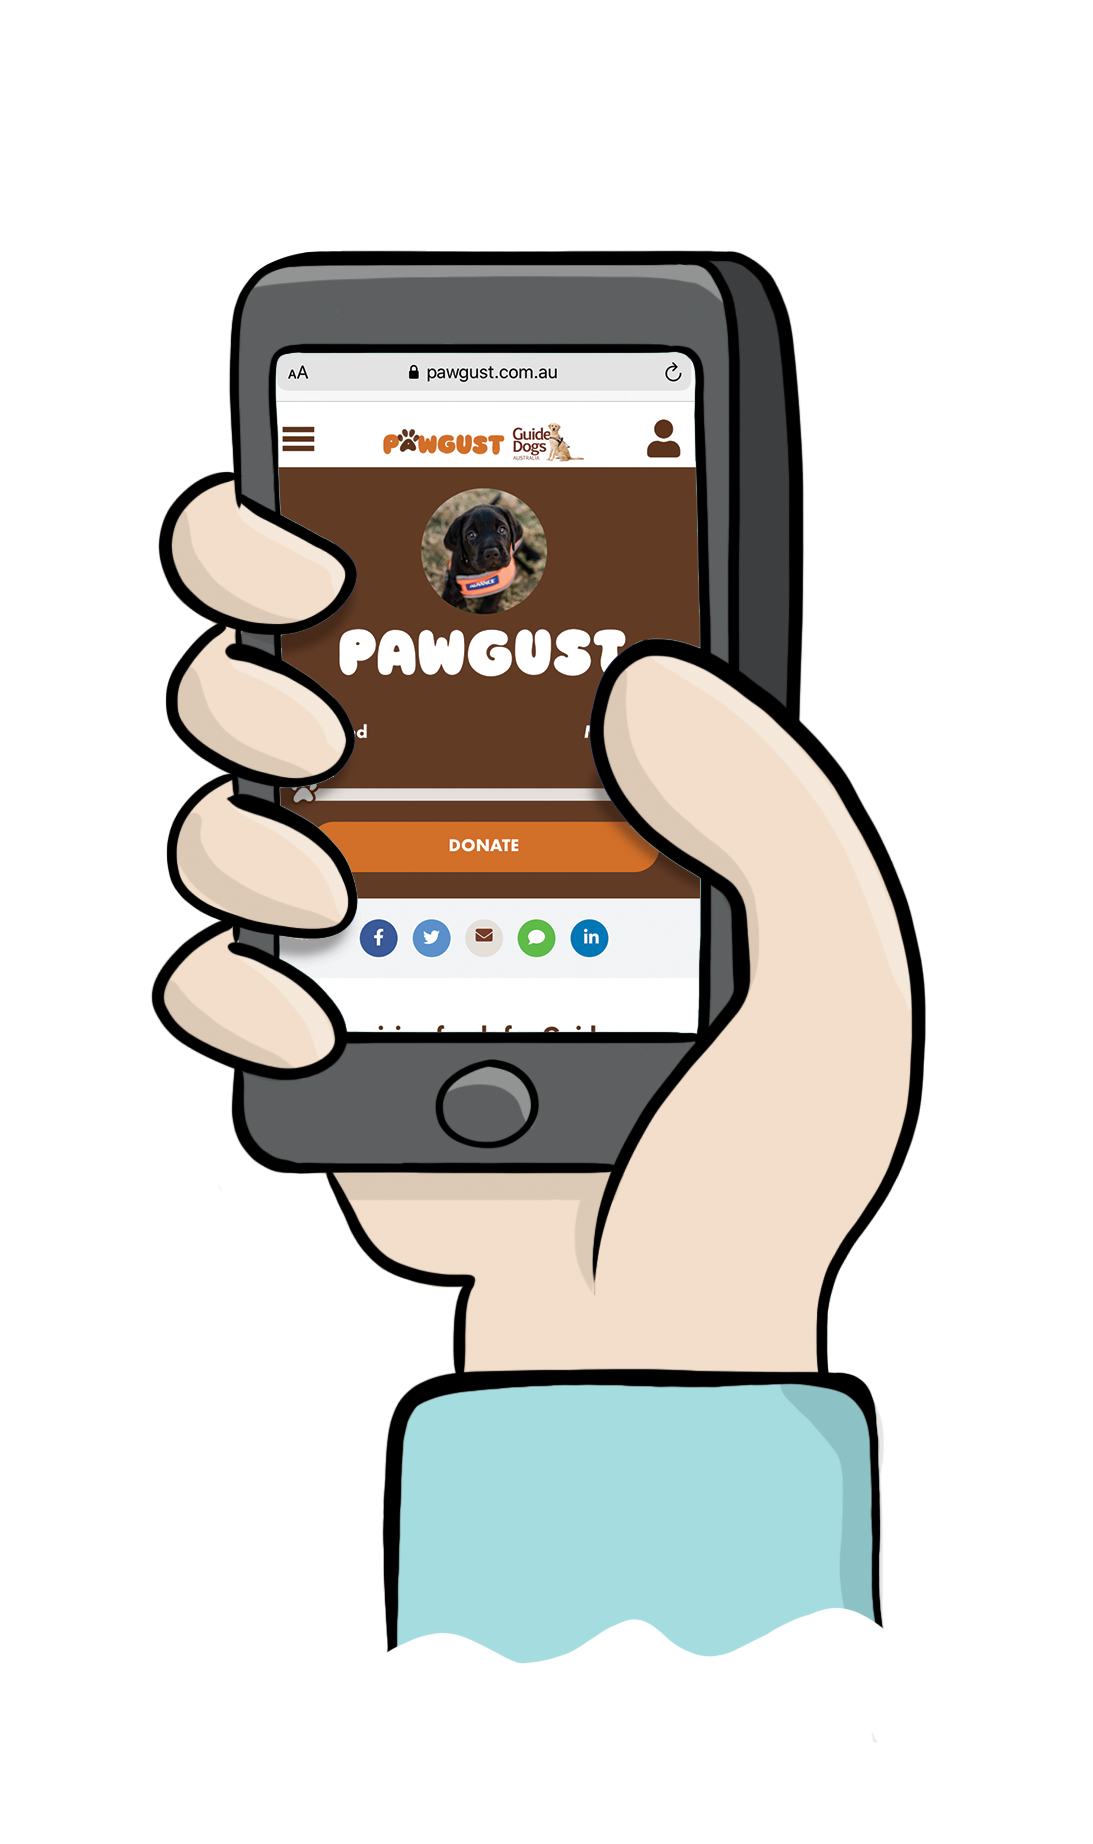 Cartoon hand holding phone with example PAWGUST fundraising page on screen.